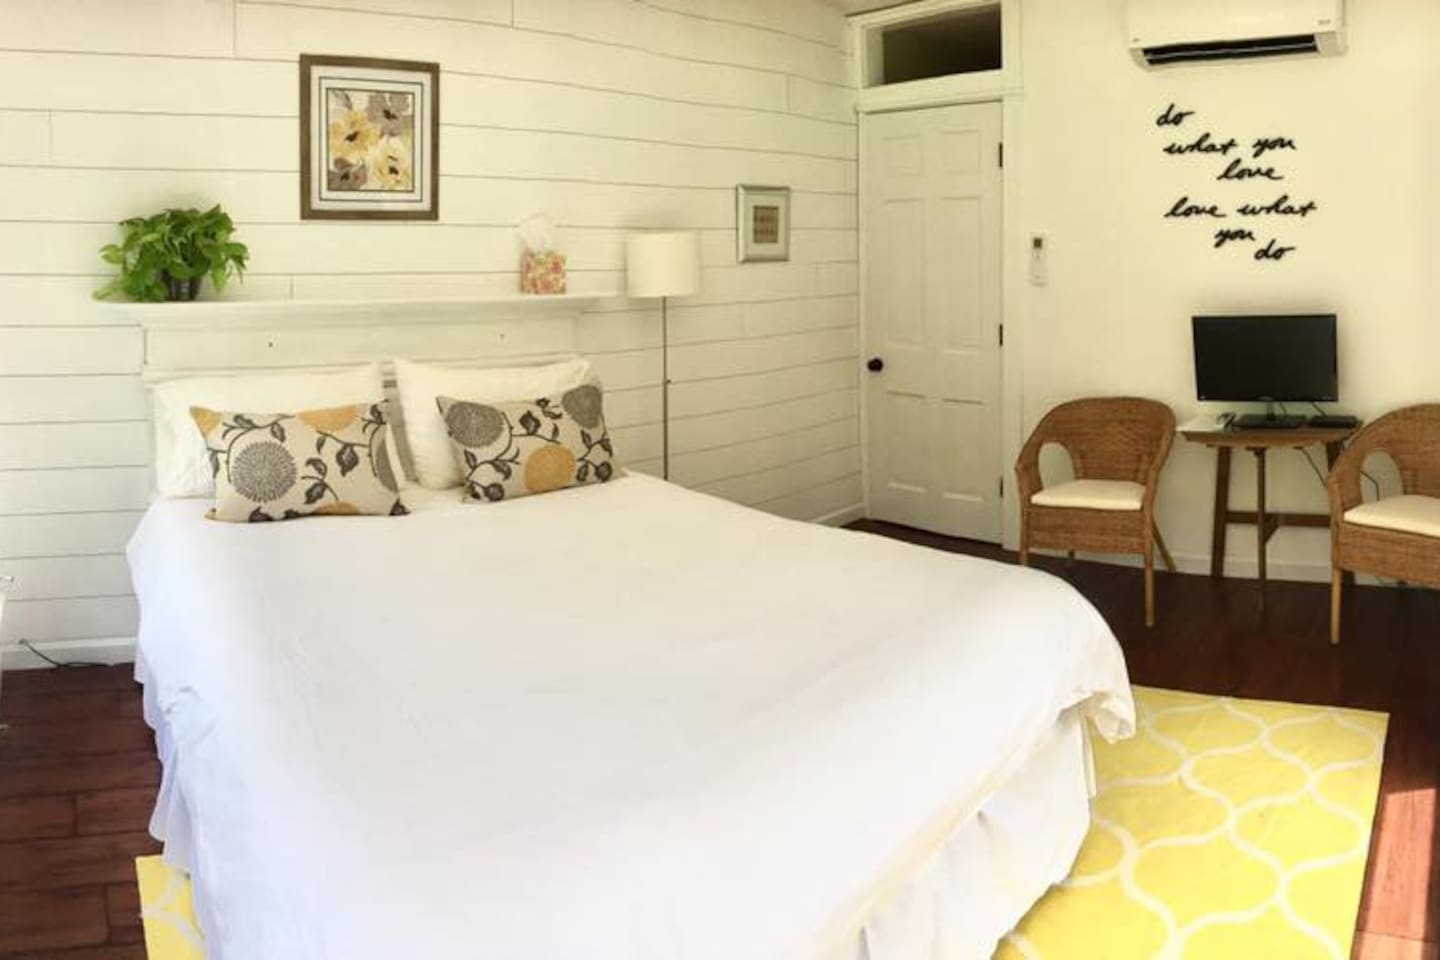 Decorated in white and gold with shiplap and antique molding.